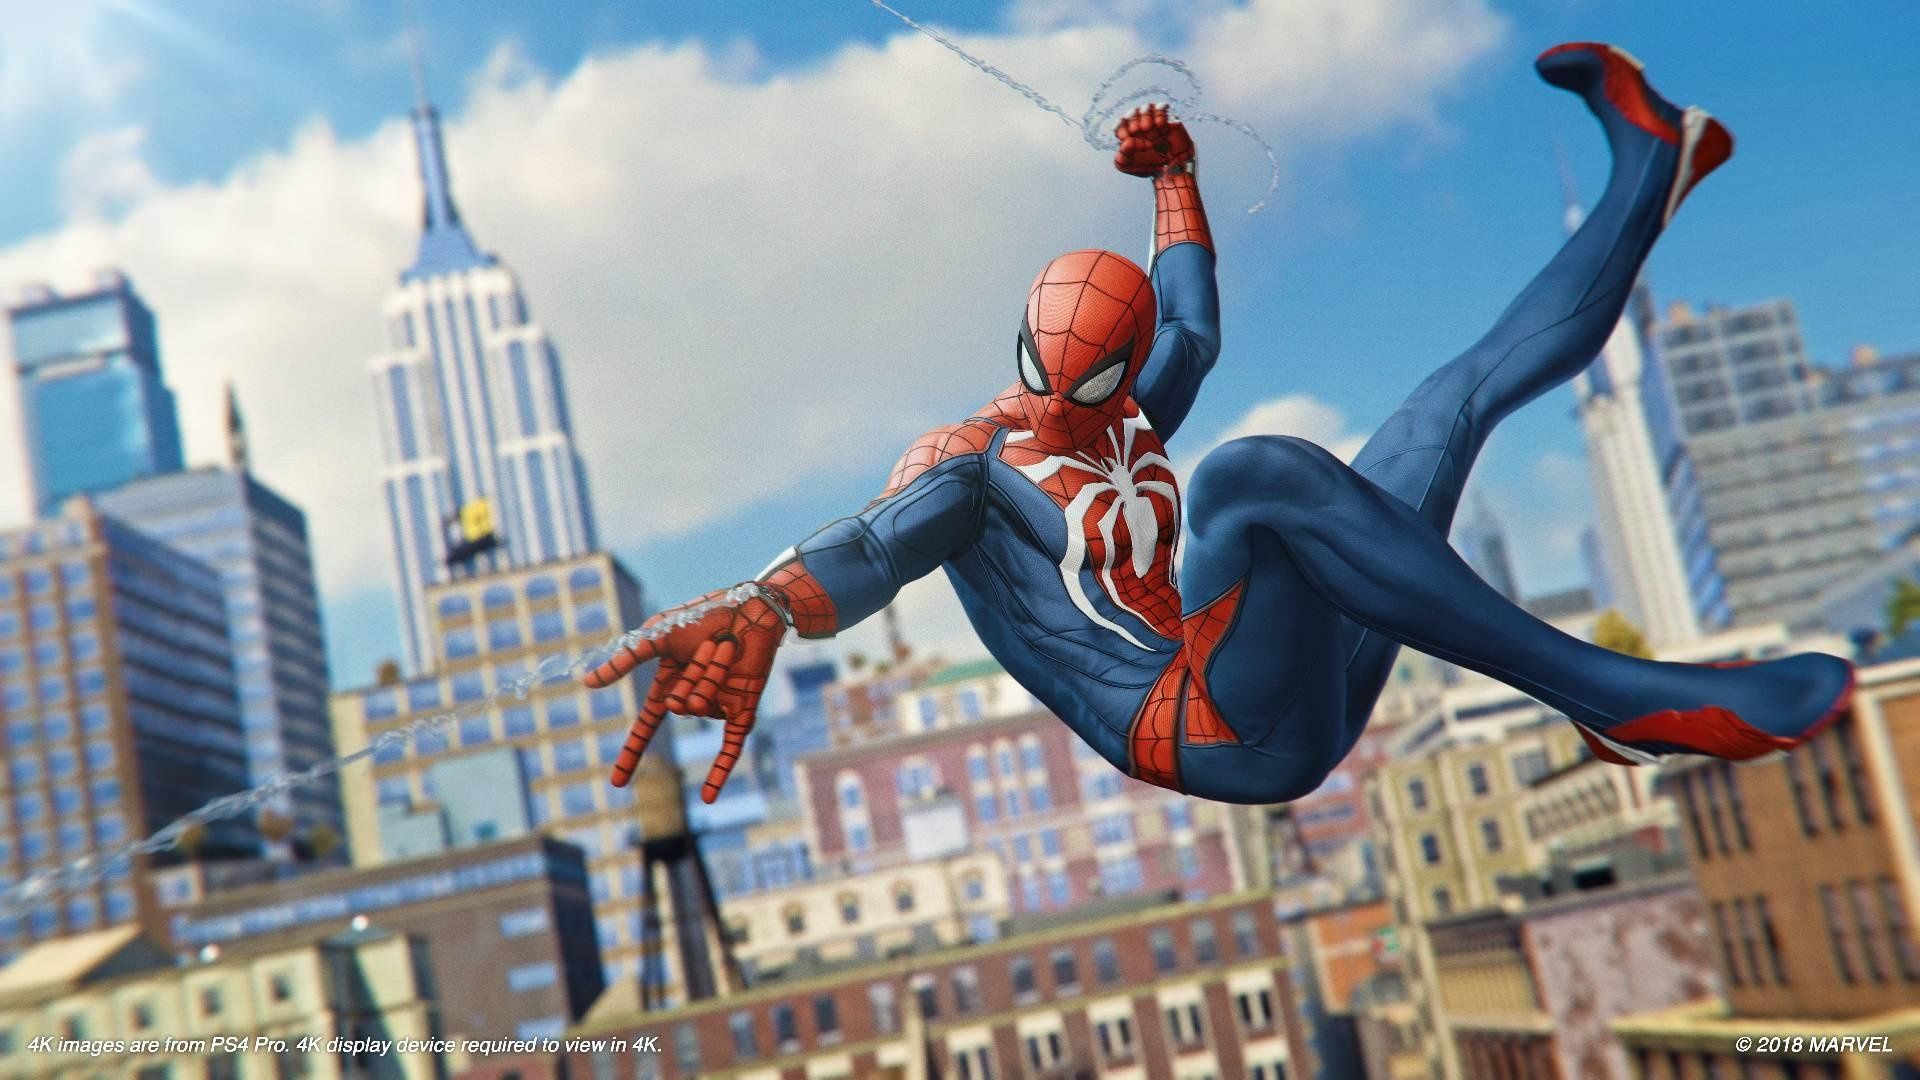 Spider Man Ps4 Wallpaper: All Easter Eggs And References